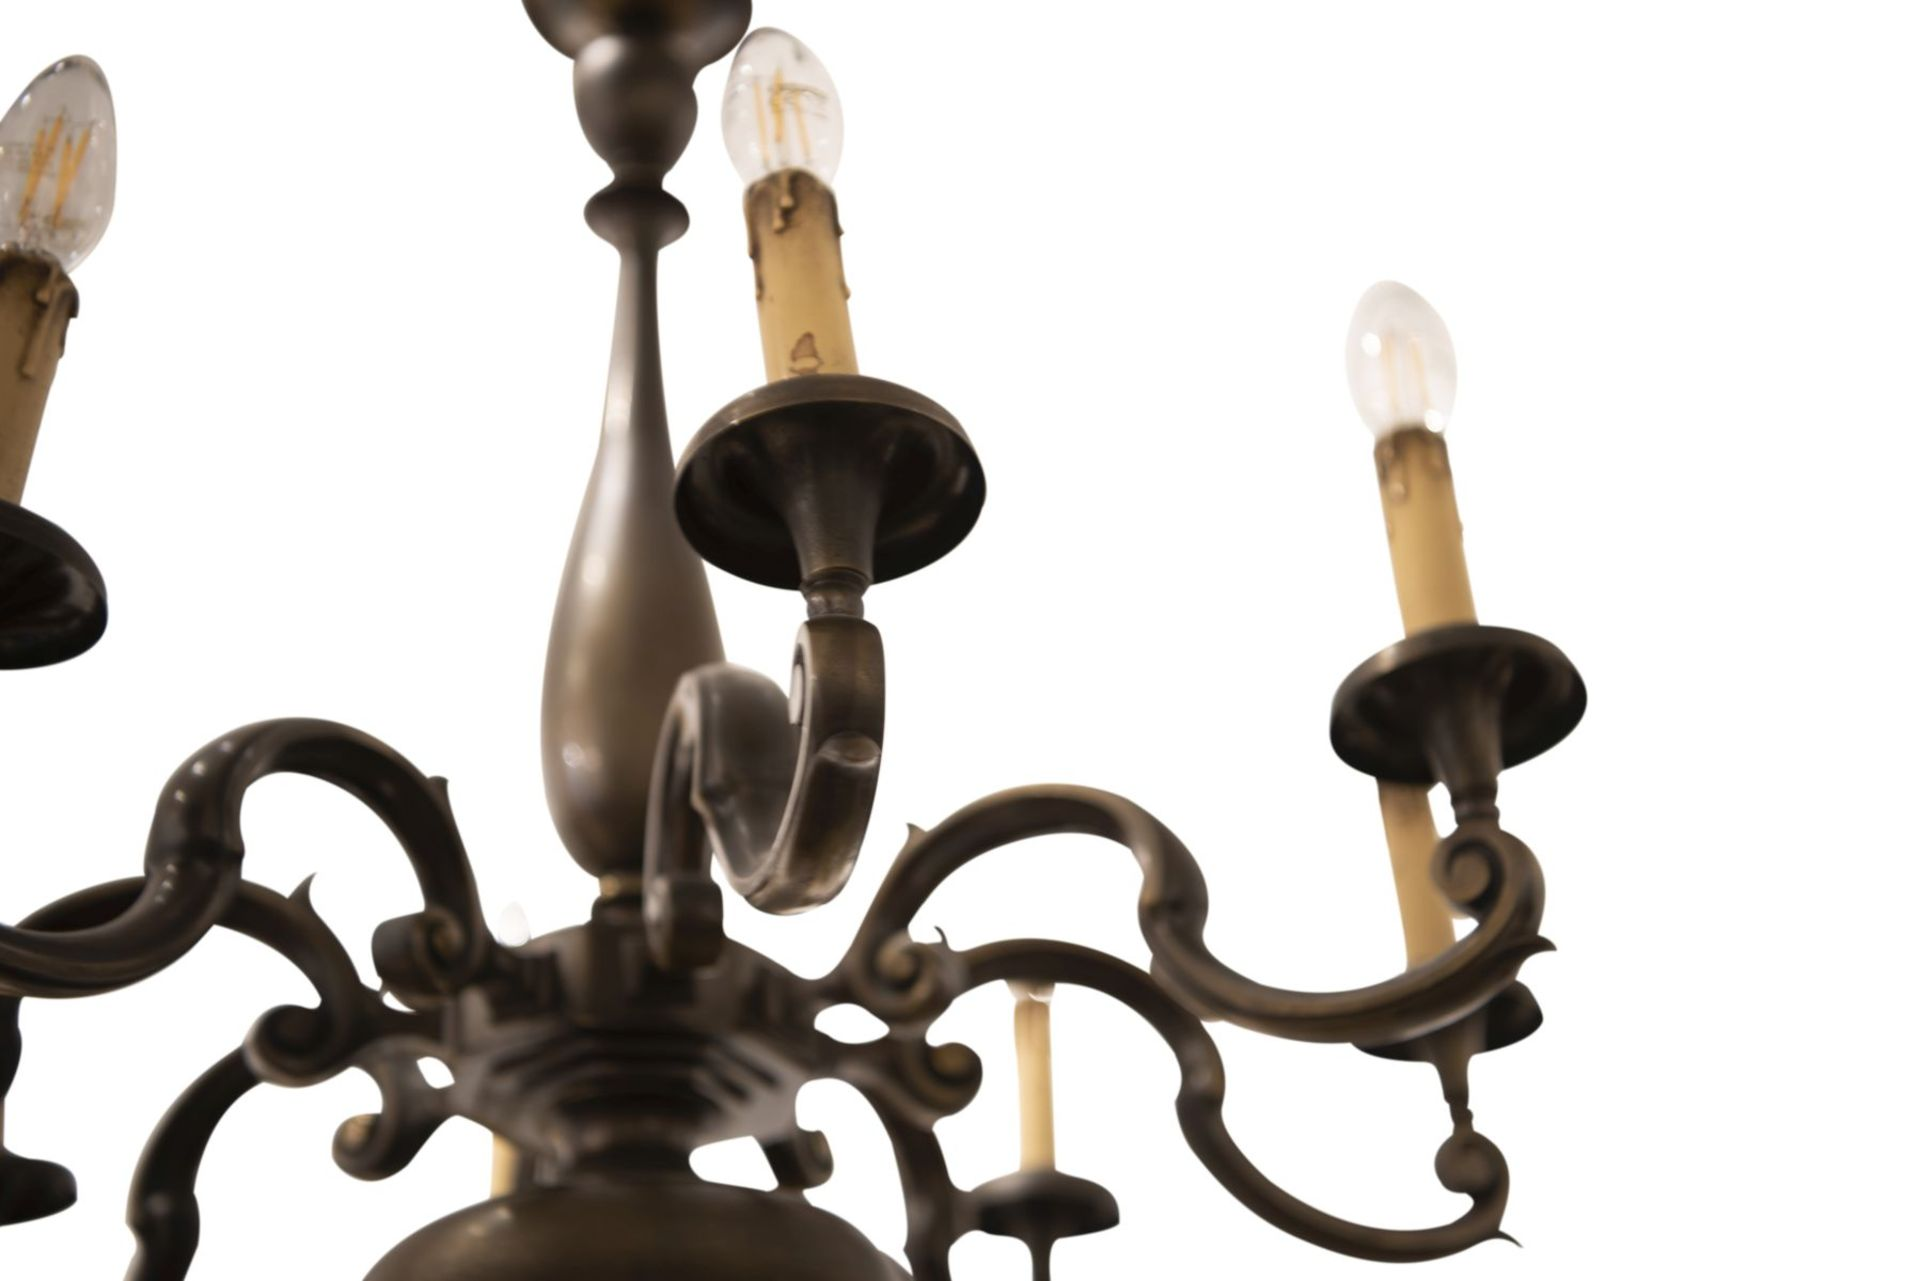 Salon chandelier and two wall appliques - Image 5 of 10